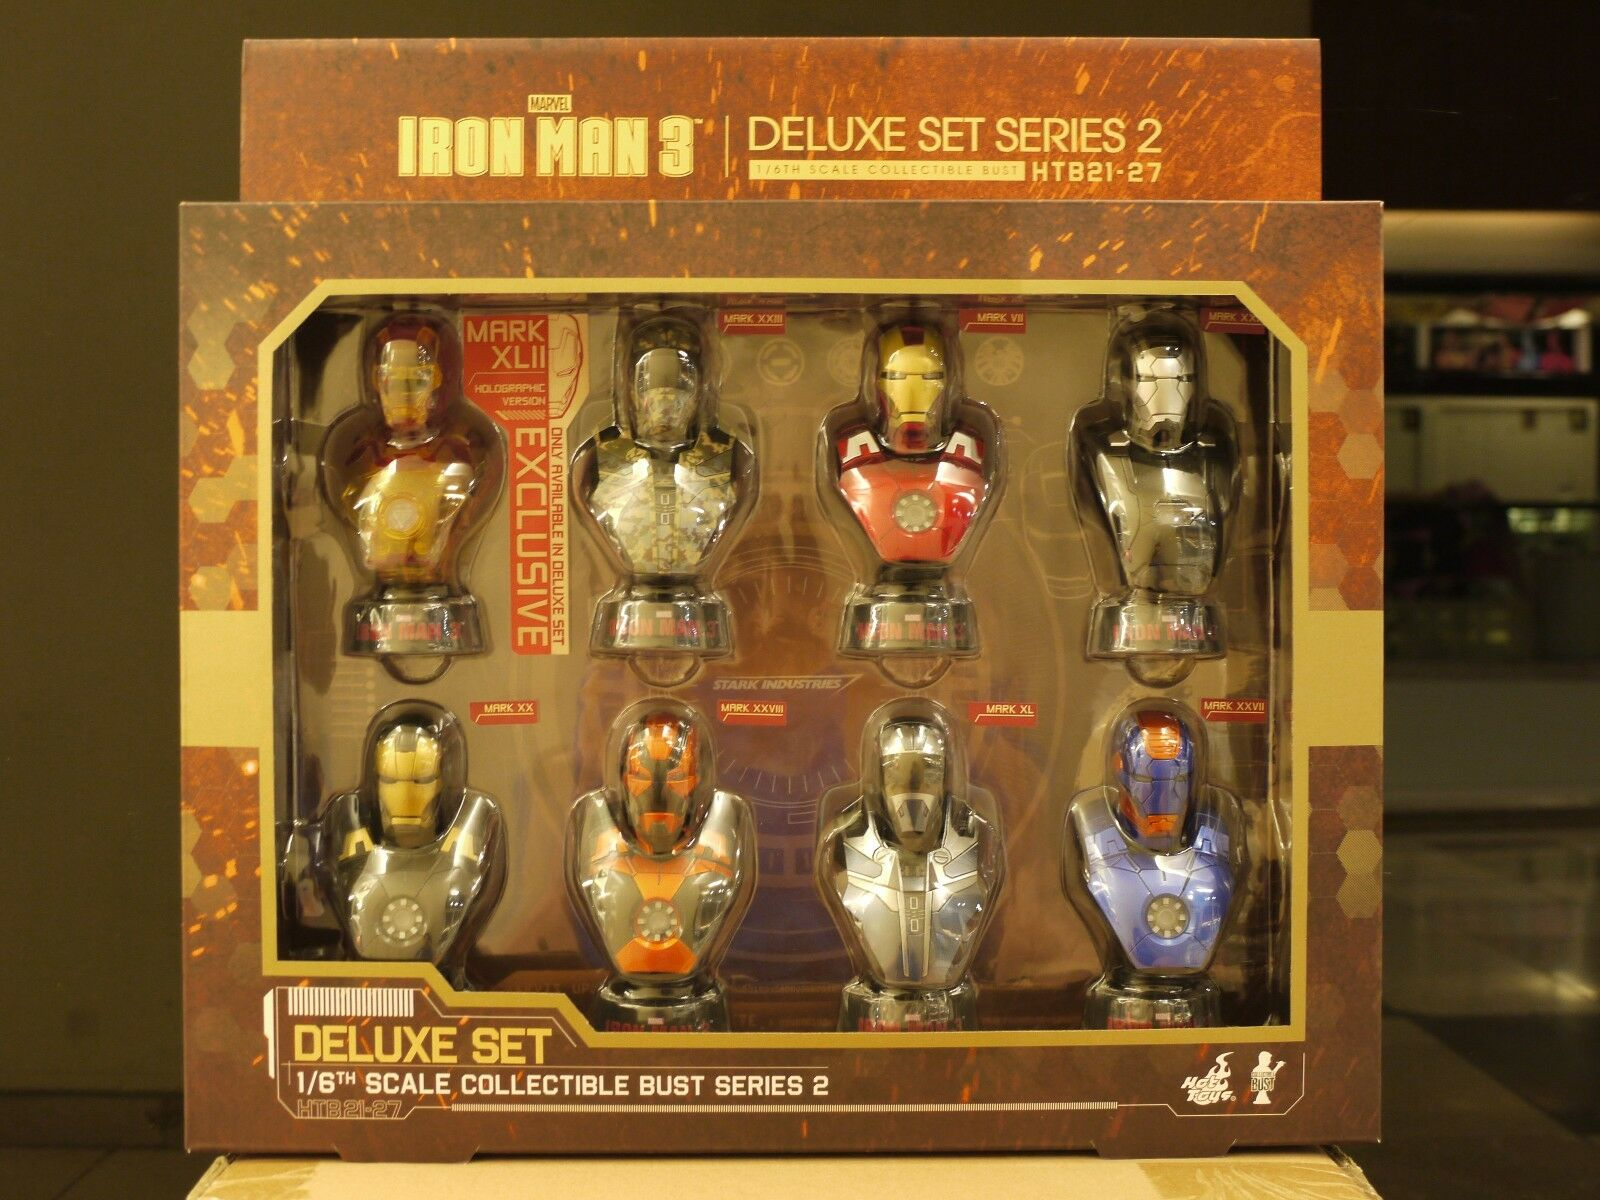 Hot Toys - Iron Man 3 - 1 6 Scale Collectible Bust Deluxe Set Series 2 (New)